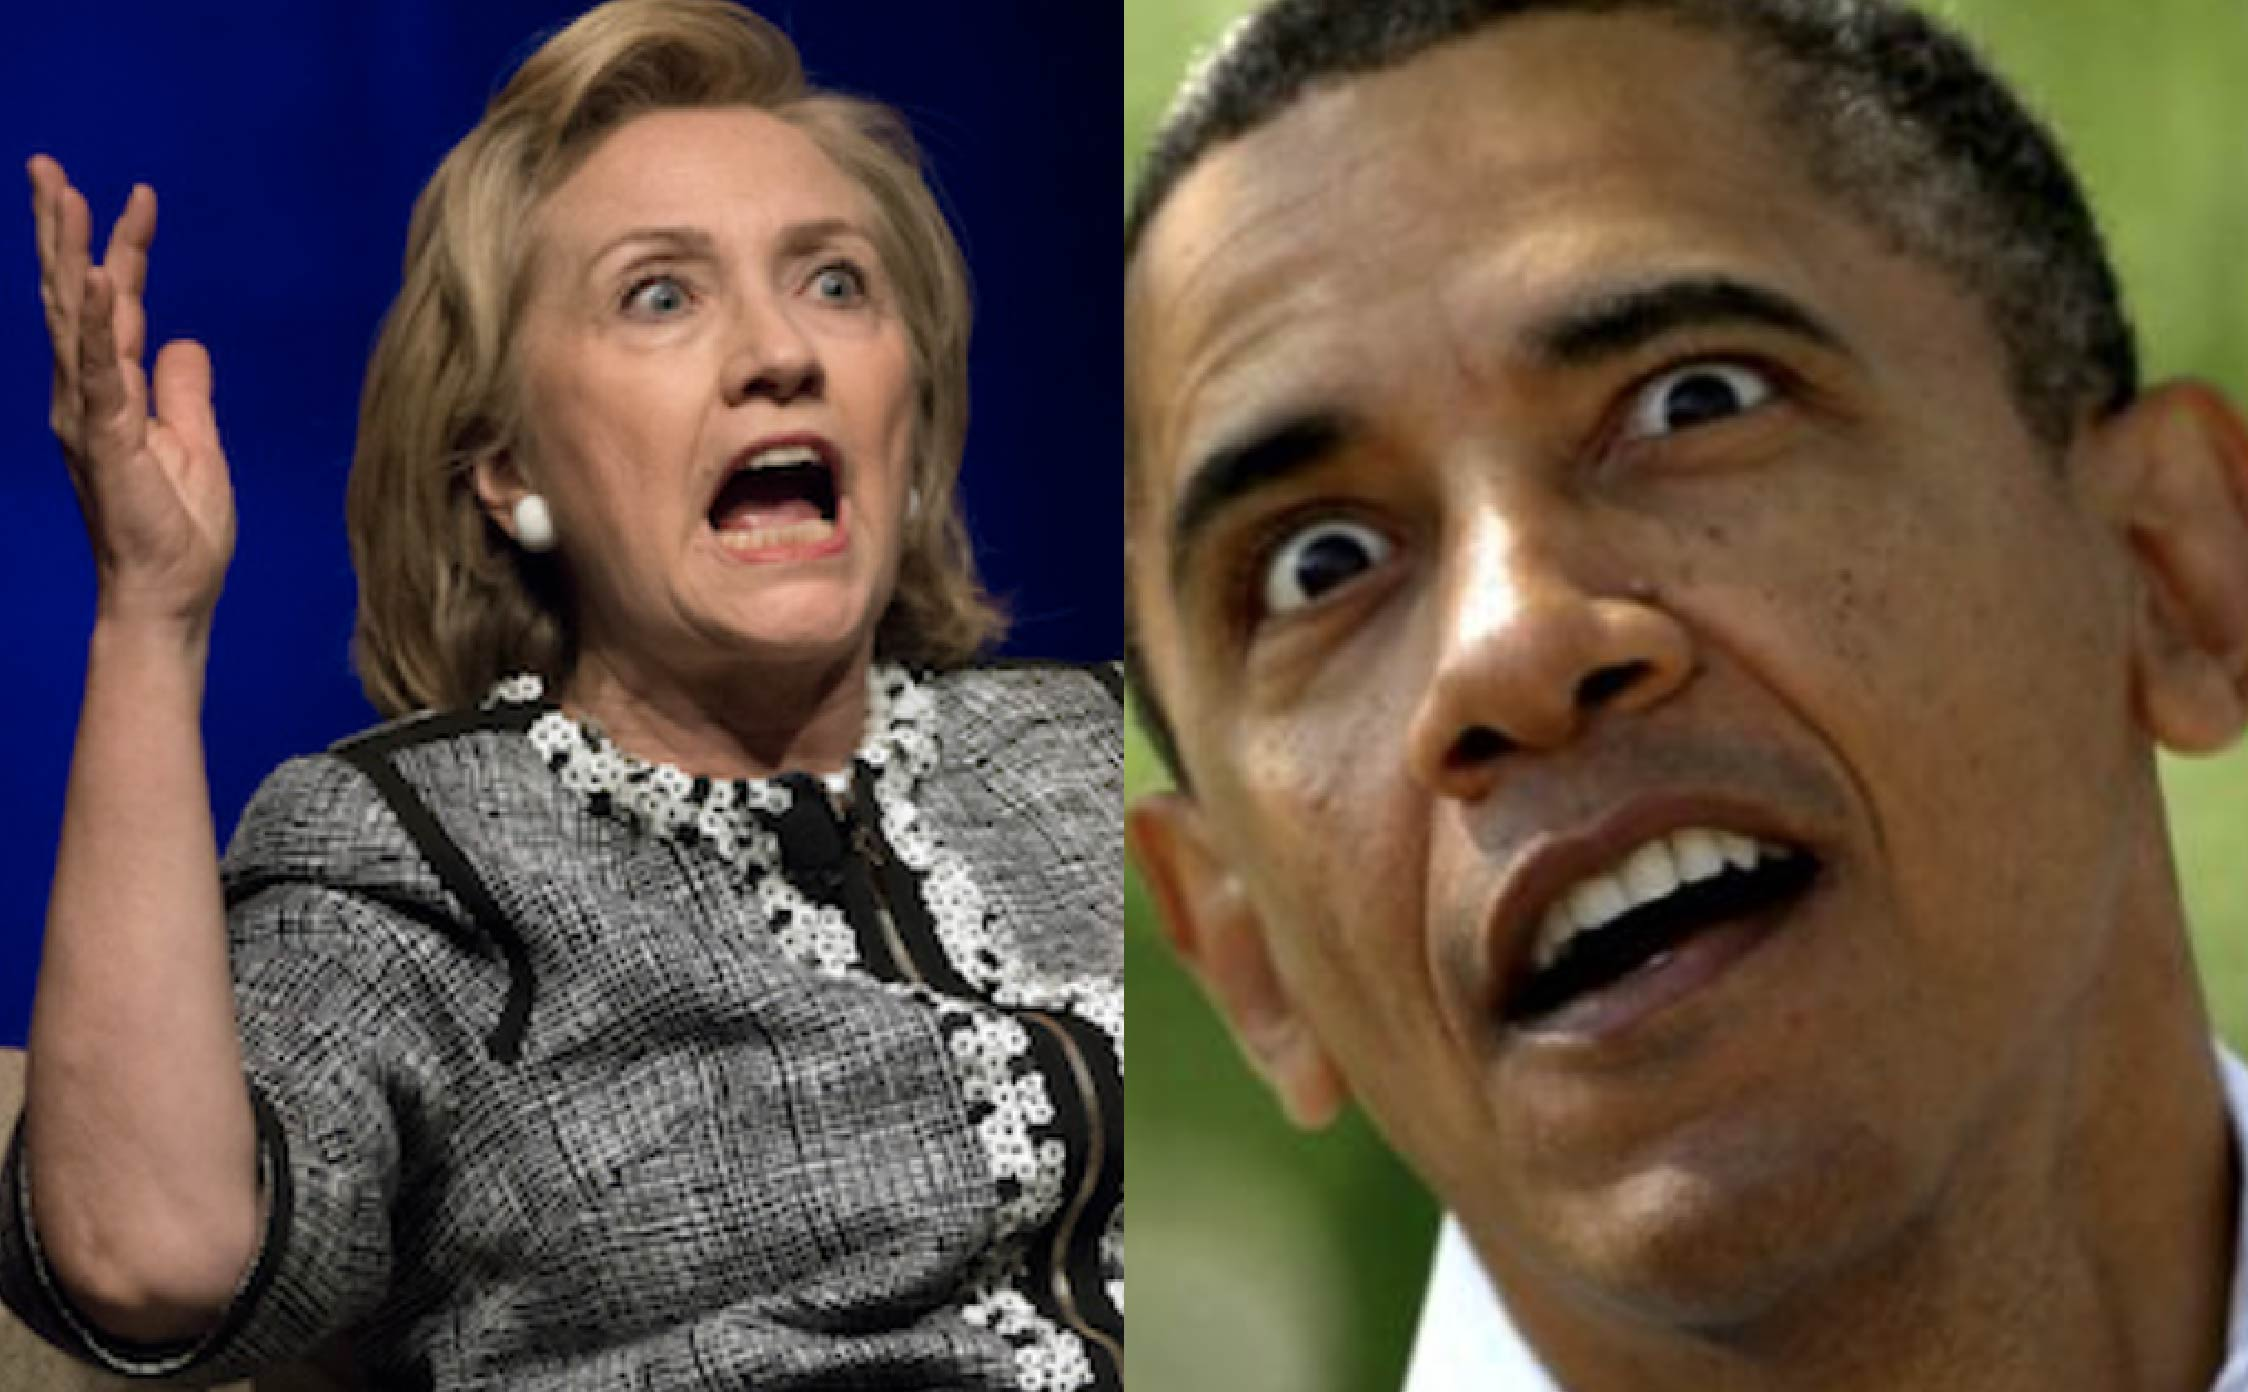 Hillary Clinton Just Turned as Frantic and Paranoid as Obama